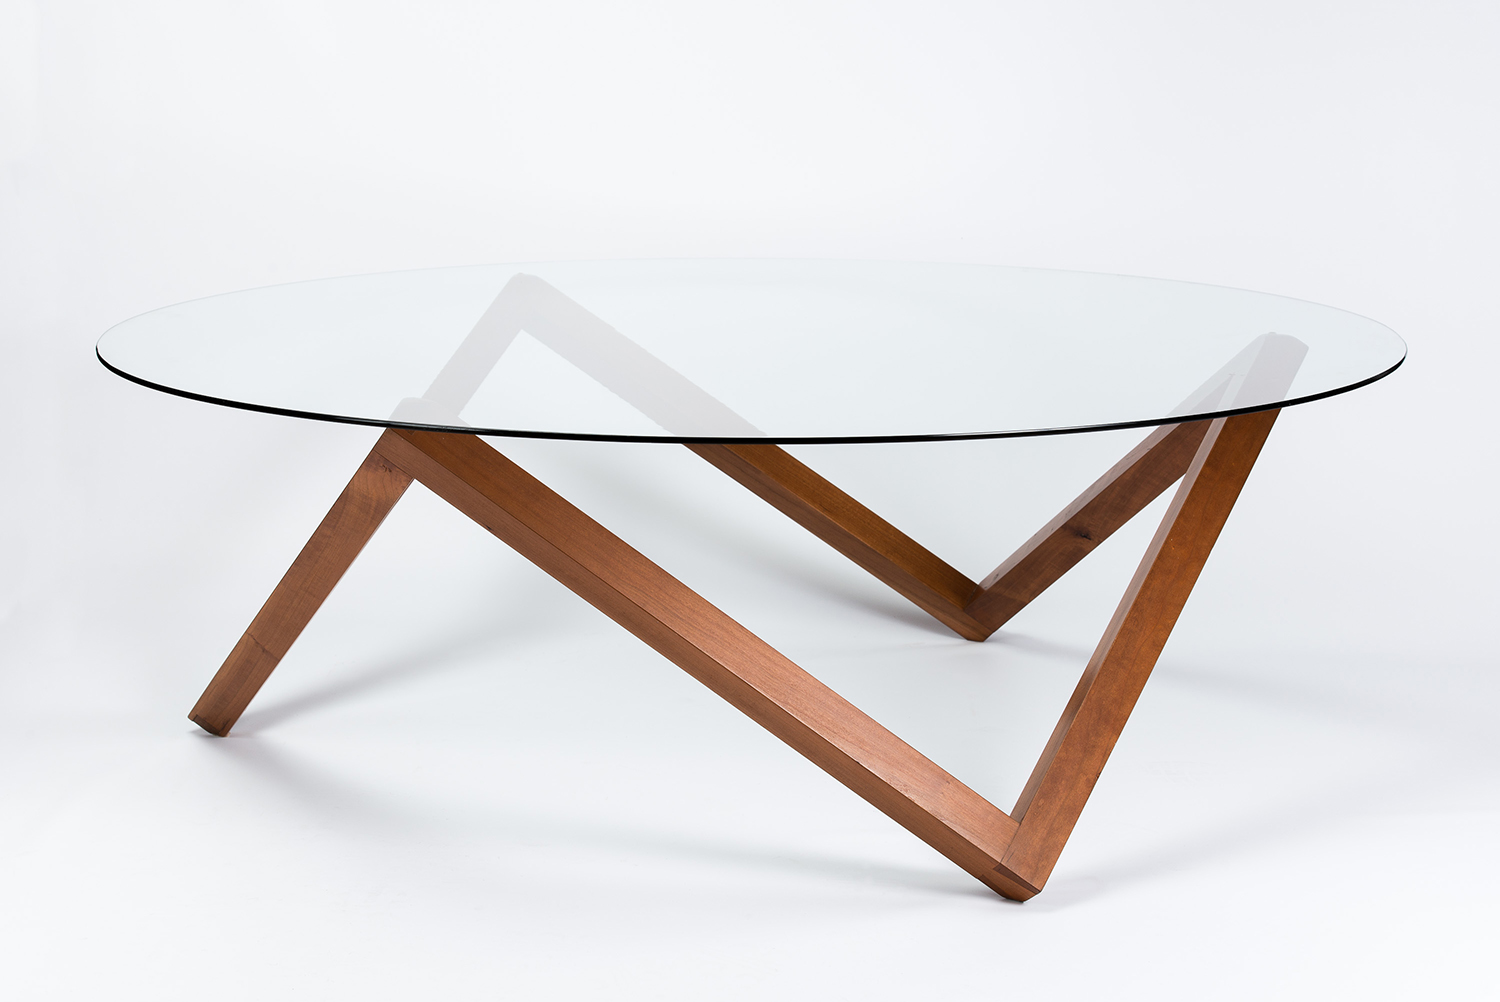 Prism Coffee Table by Alan Flannery Furniture Design L12.jpg